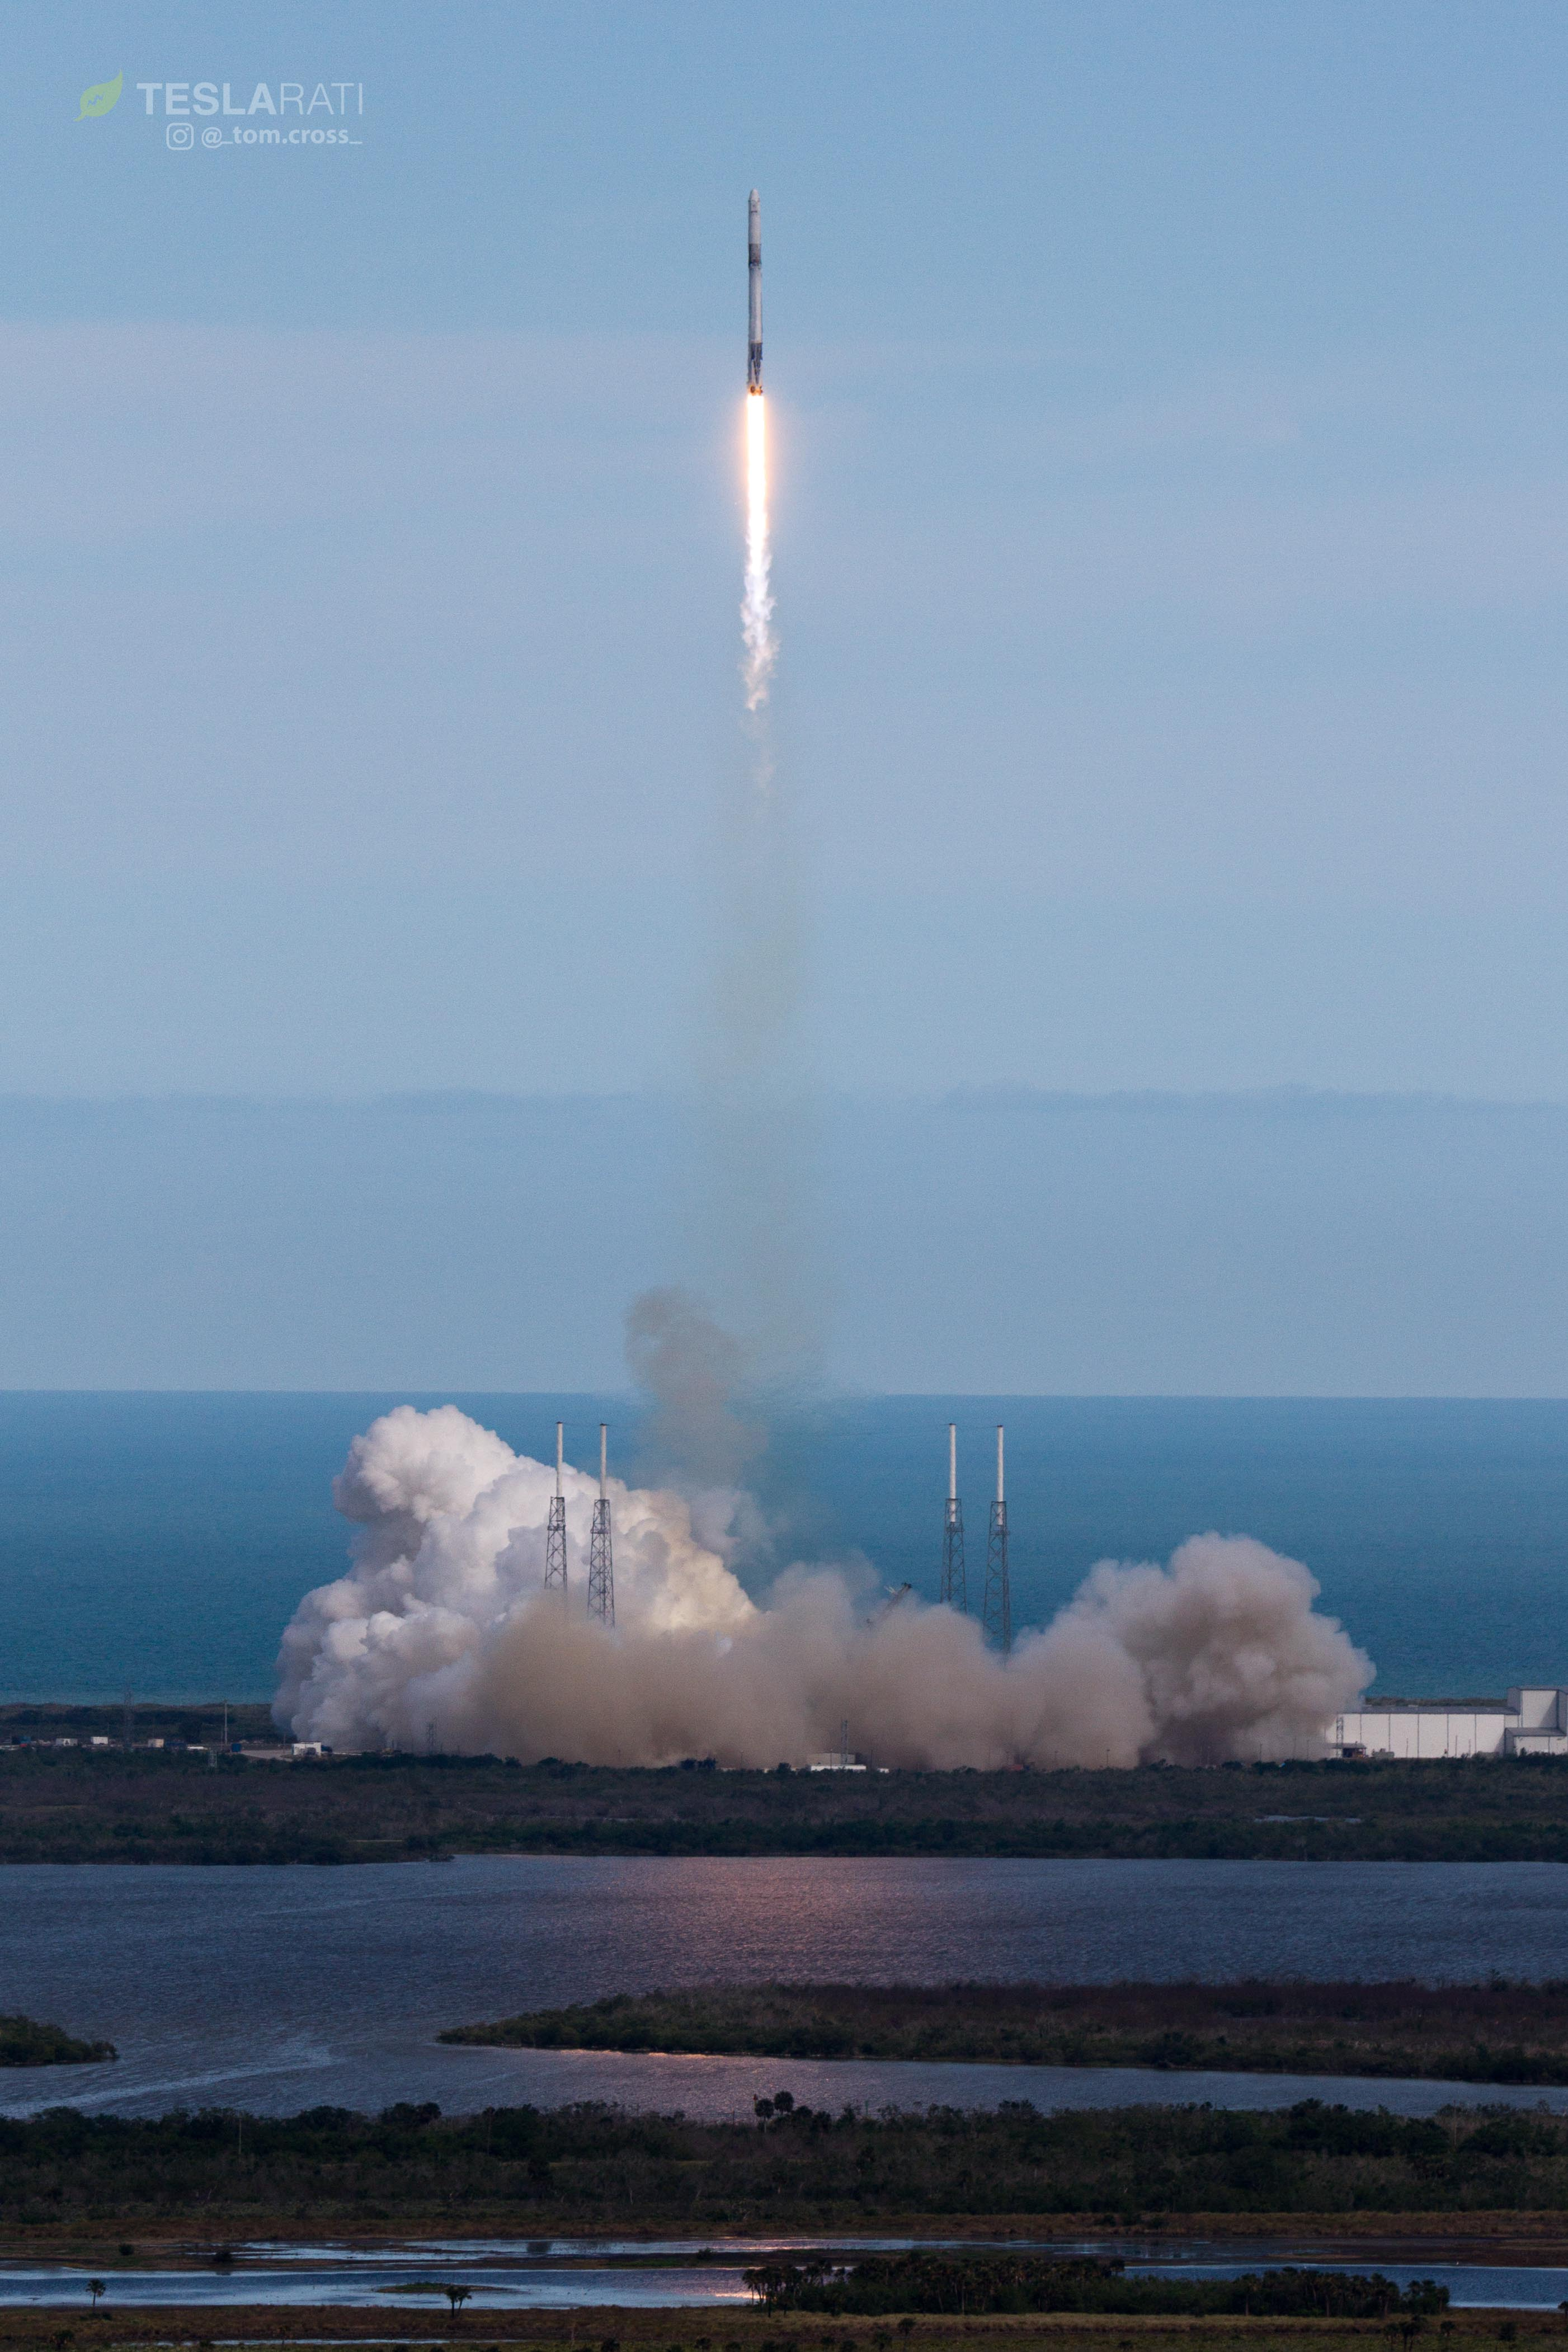 CRS-14 1039 liftoff VAB 2 (Tom Cross)